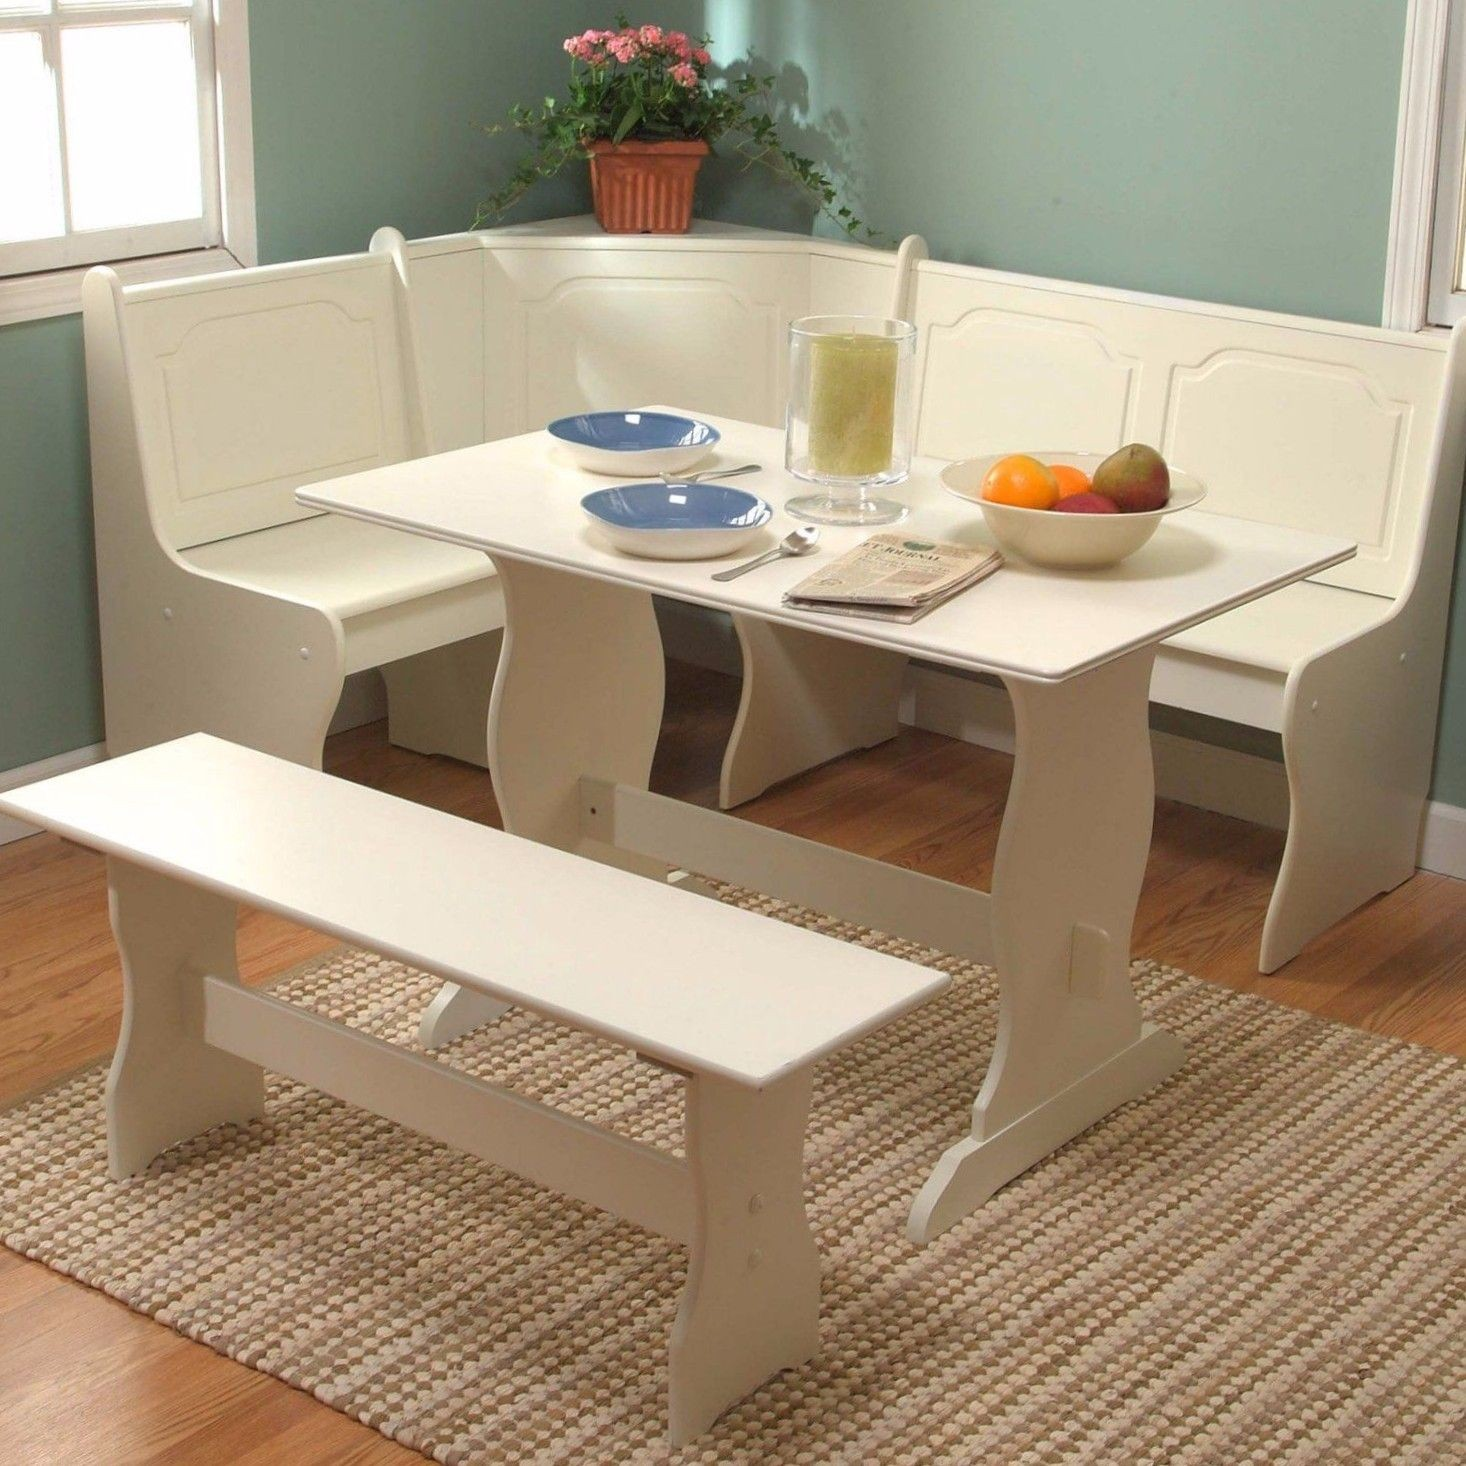 Decorative Kitchen Furniture Set 29 White Dining Breakfast Nook Corner Booth Bench Table Seat 5a2e c5f Home